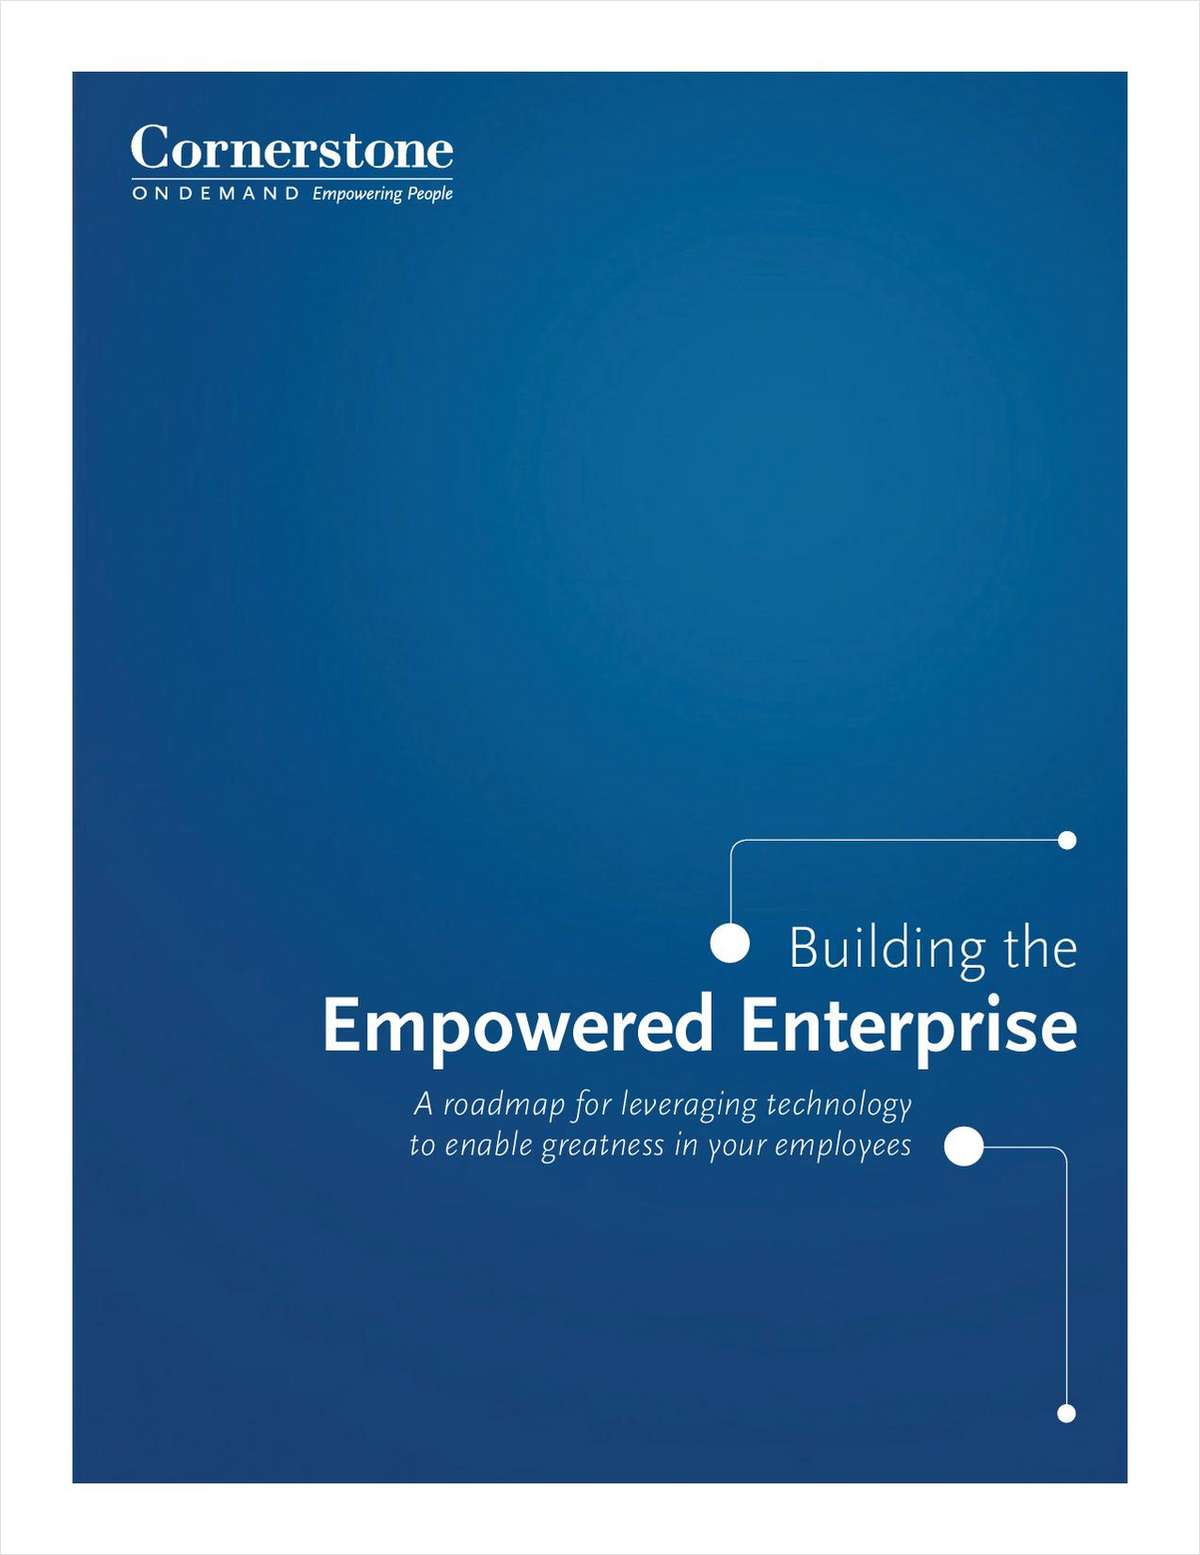 Building the Empowered Enterprise